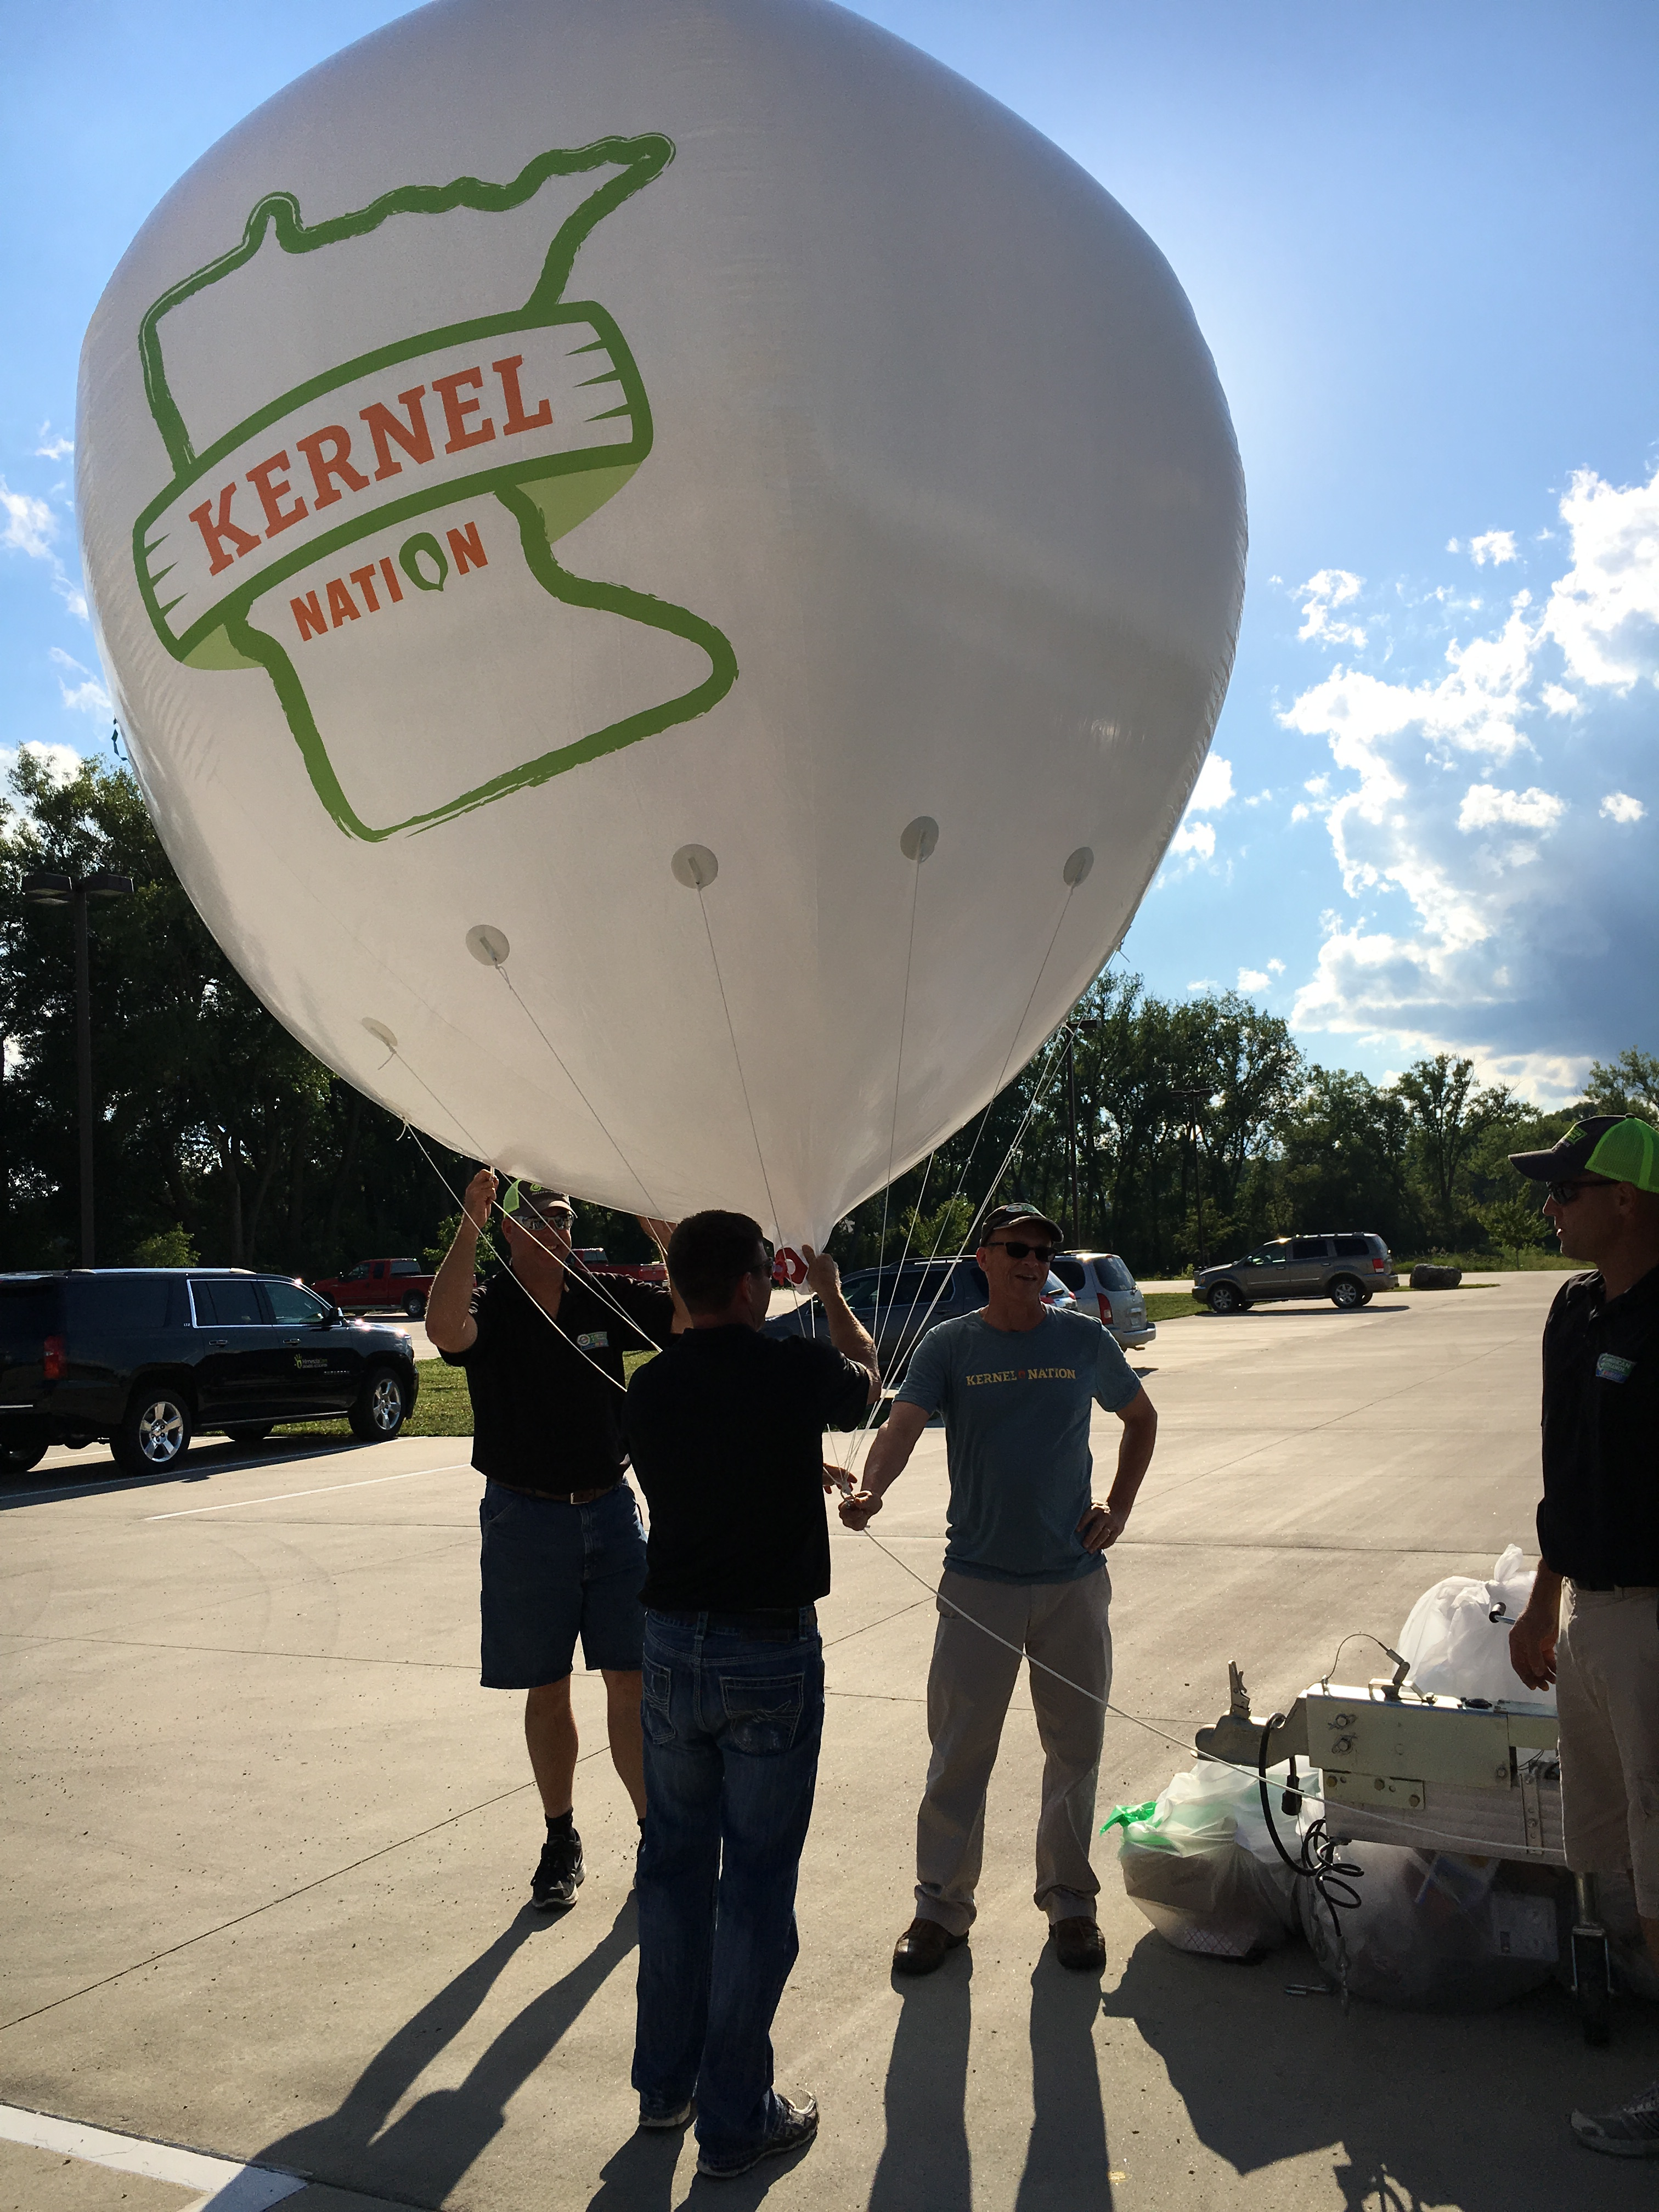 Kernel Nation had its own blimp. Yes, a blimp!